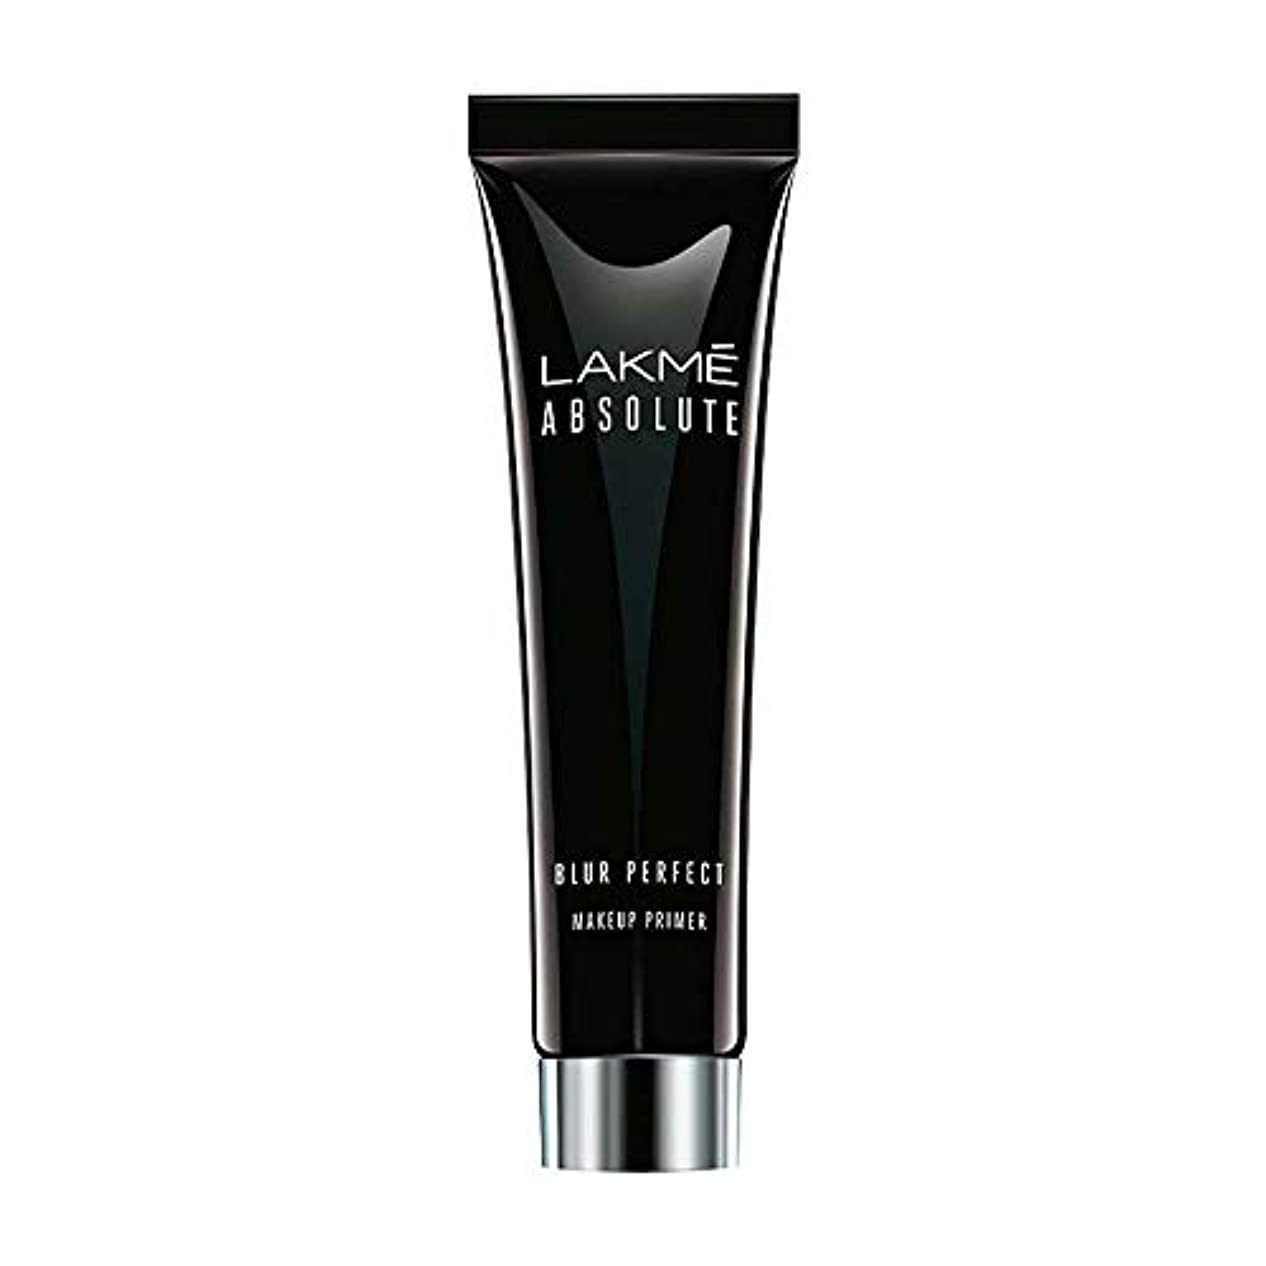 積極的に単調な野ウサギLakme Absolute Blur Perfect, Makeup Primer, 30 g